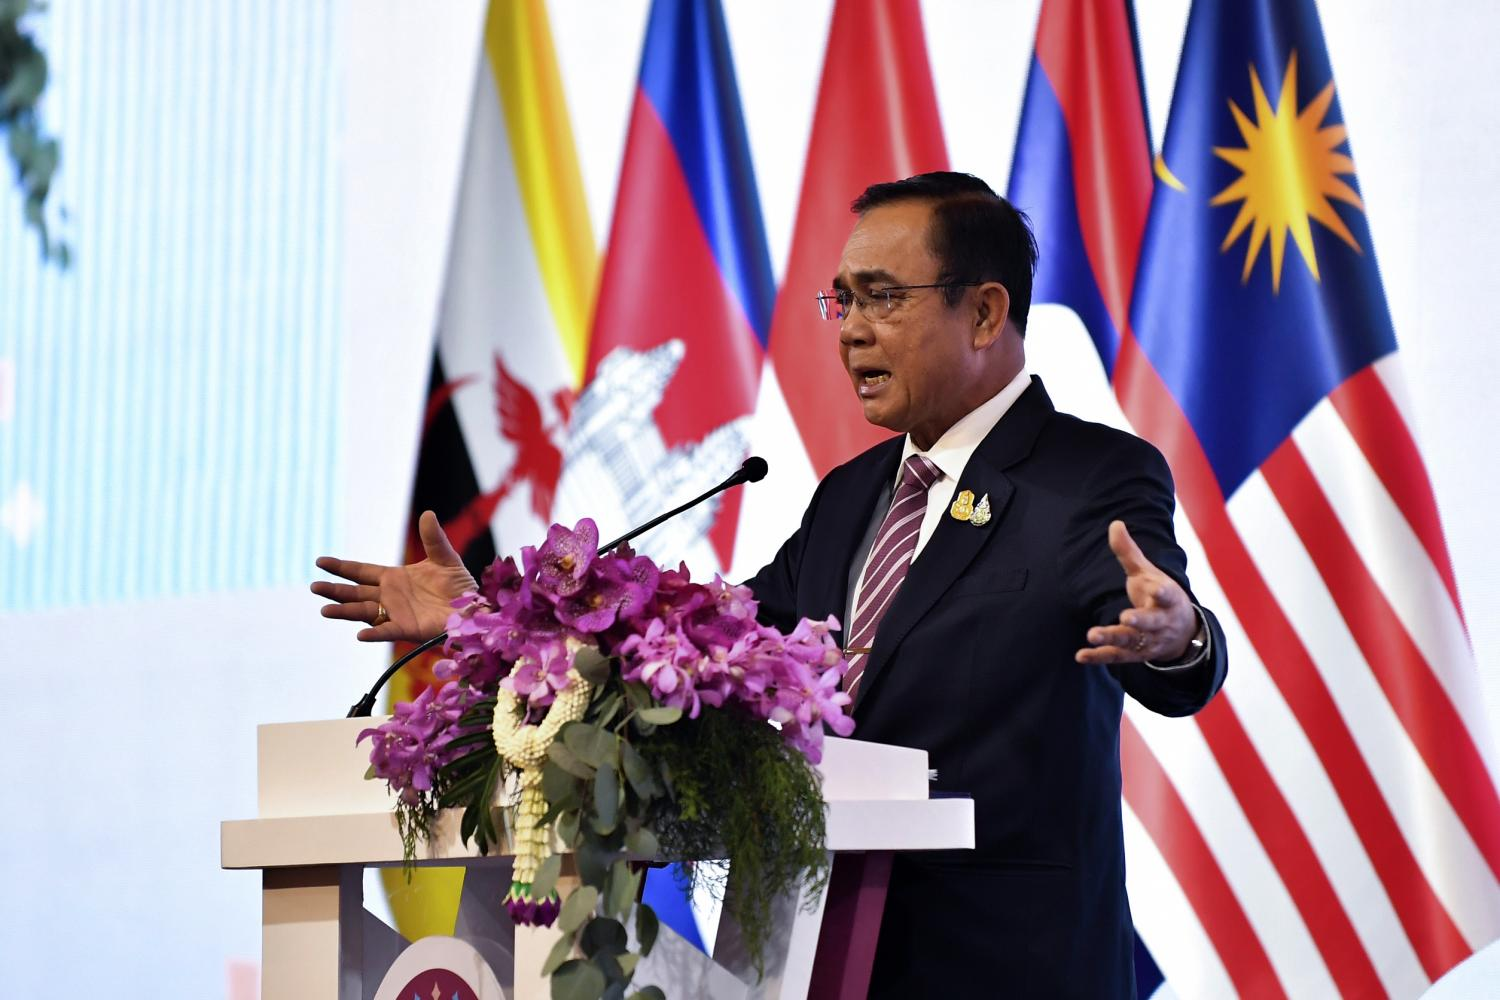 Gen Prayut Chan-o-cha presides over the opening ceremony of the 51st Asean Economic Ministers' Meeting at the Shangri-La Hotel in Bangkok on Friday.